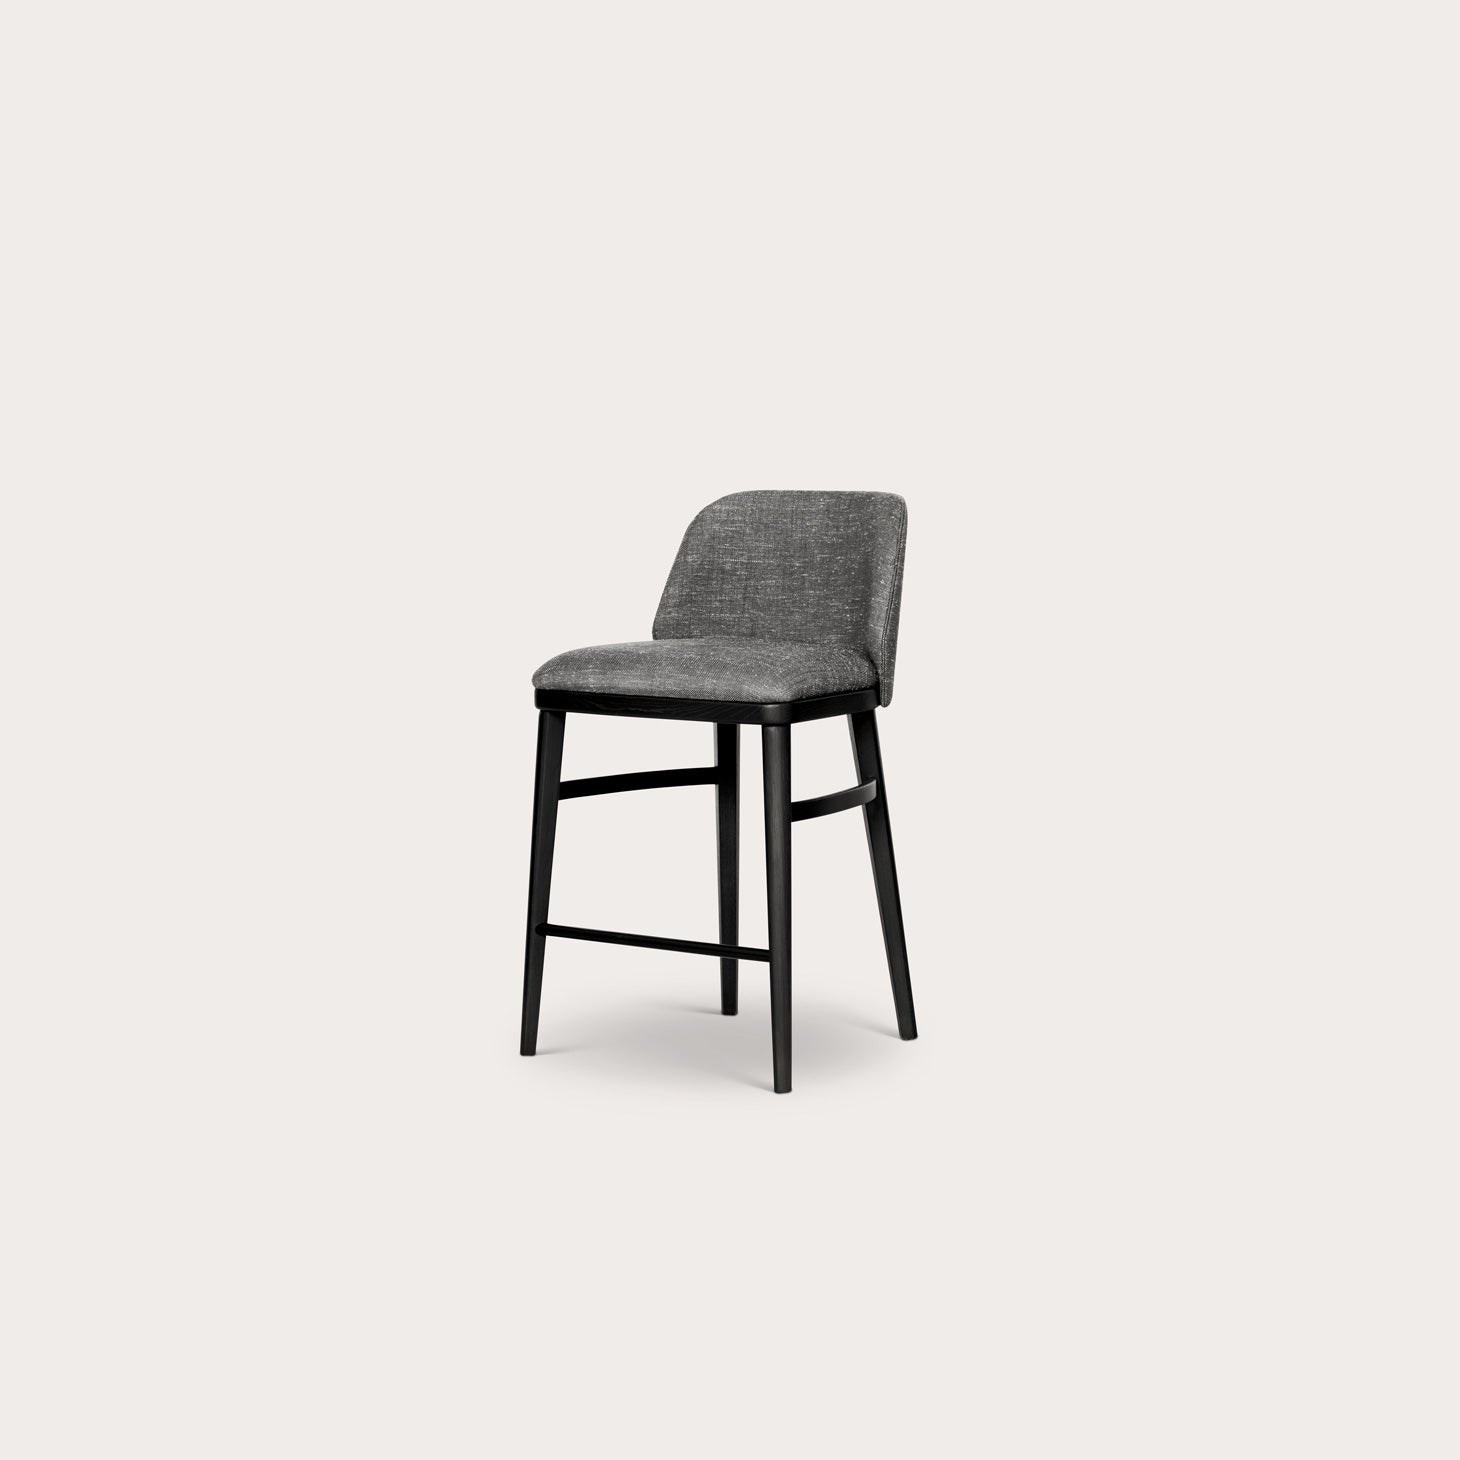 LUM Bar Stool Seating Christophe Delcourt Designer Furniture Sku: 765-120-10016